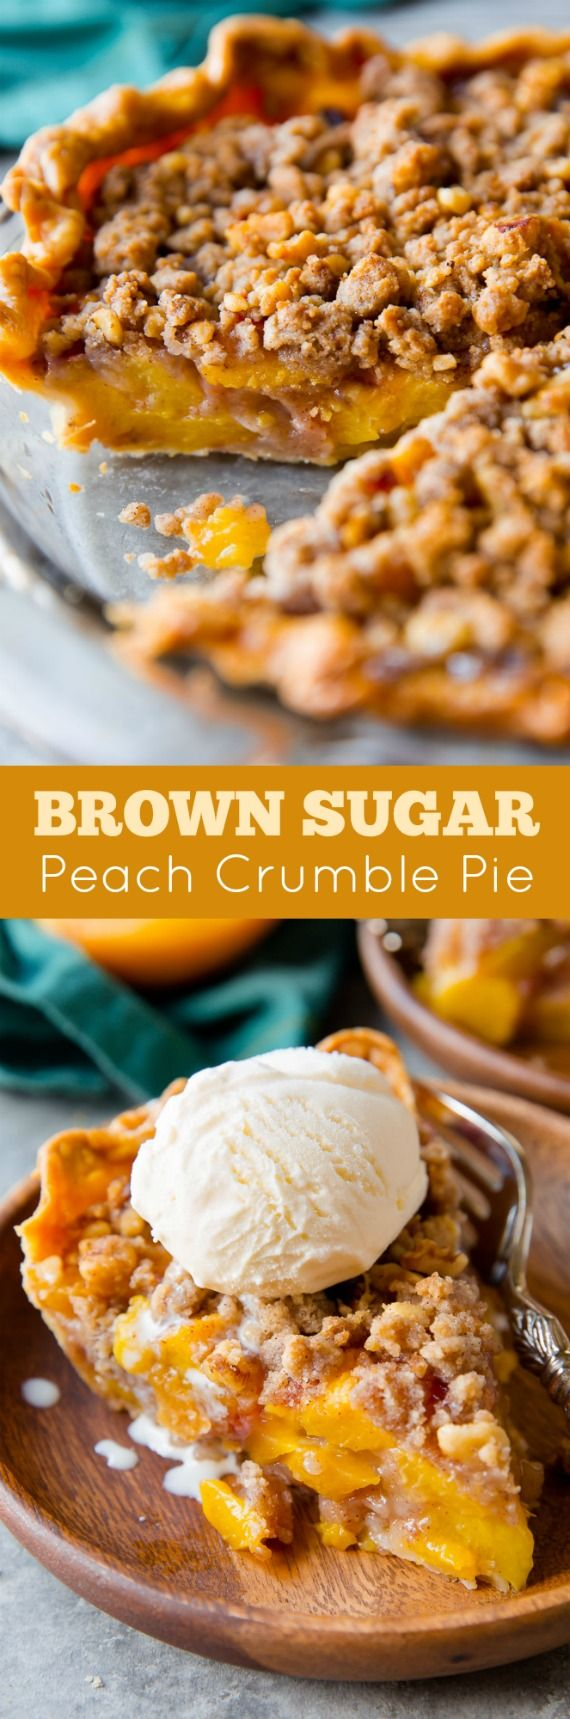 With brown sugar and cinnamon, this peach crumble pie is my favorite. The filling holds its shape and the crust is buttery and flaky! Recipe on sallysbakingaddiction.com